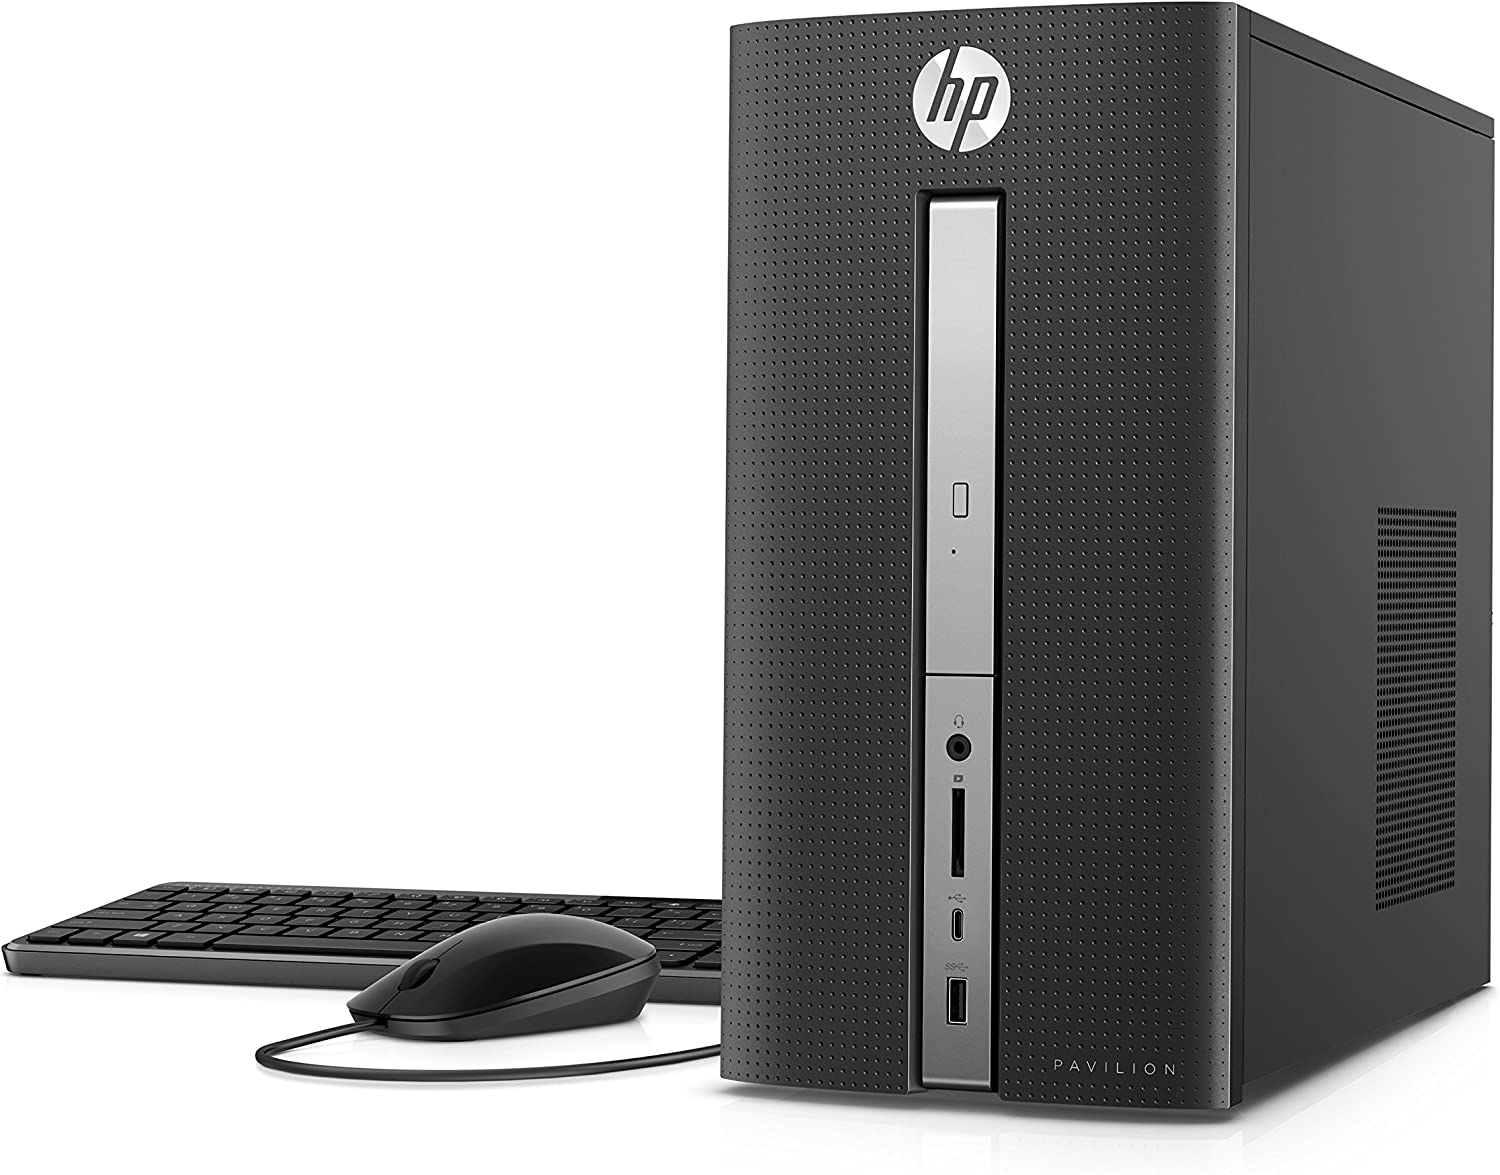 HP Pavilion Desktop Computer, Intel Core i5-7400, 8GB RAM, 1TB Hard Drive, Windows 10 (570-p020, Black)